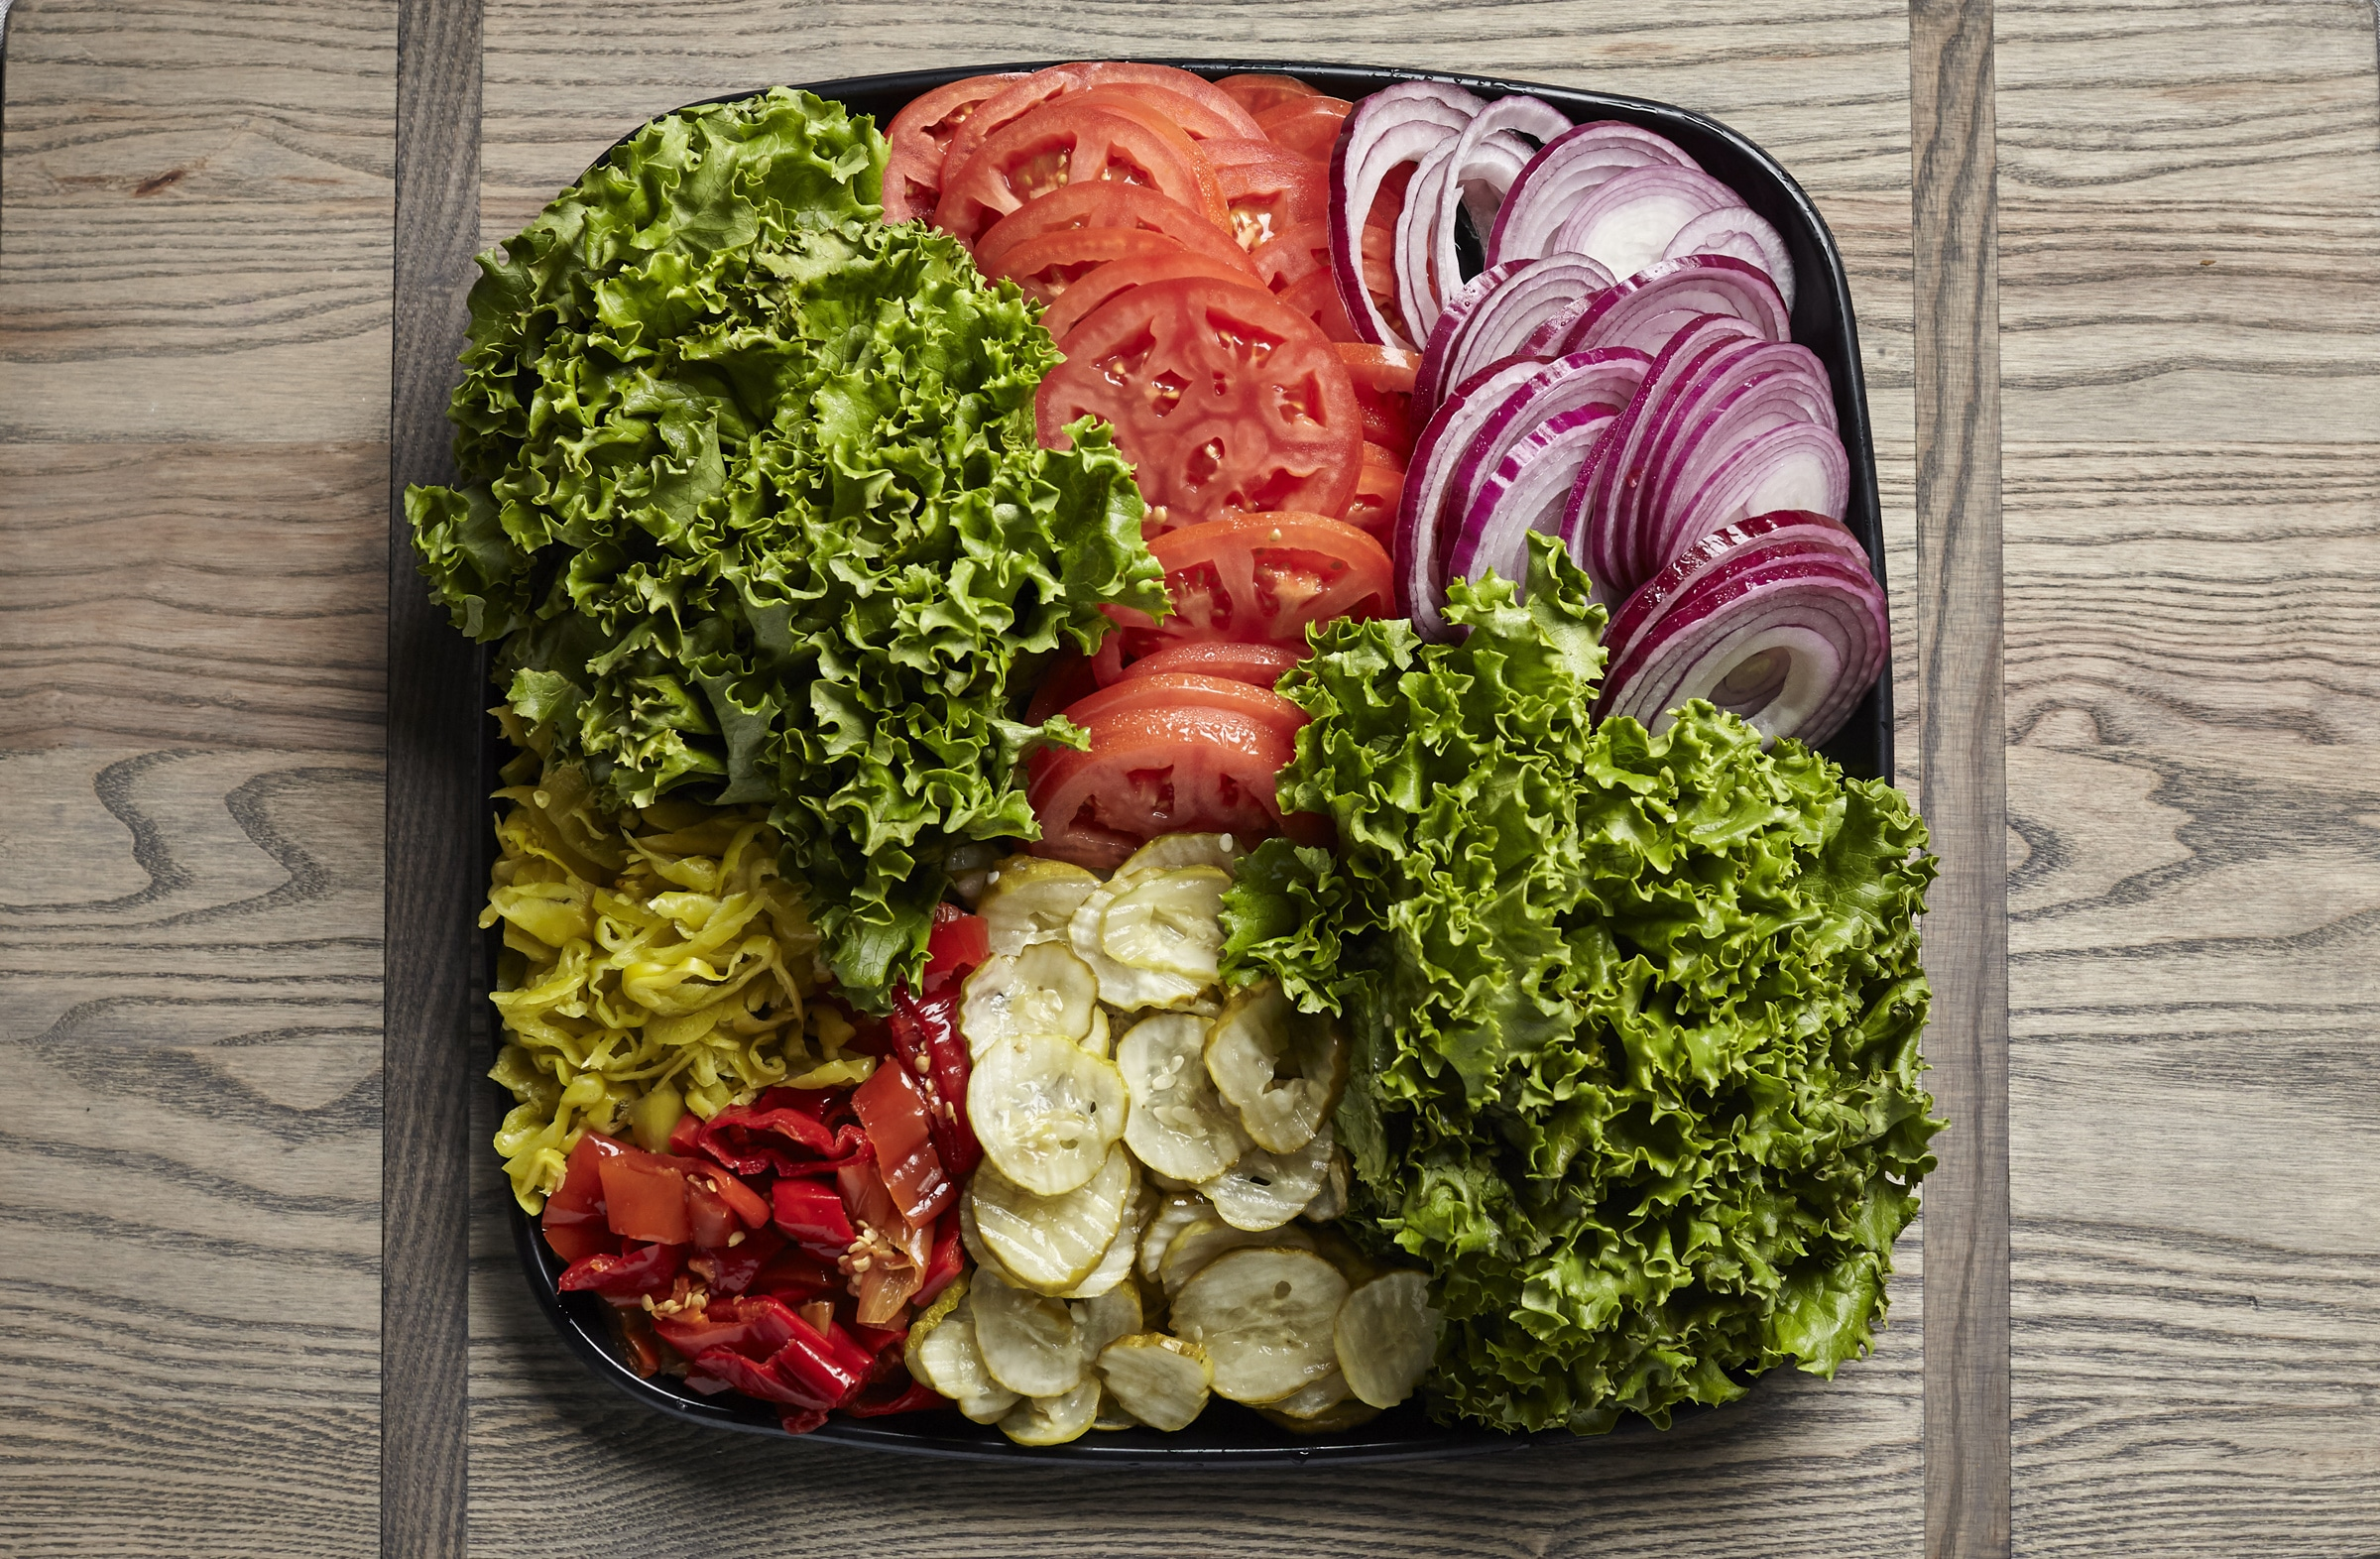 sandwich vegetables catering tray from Zupans